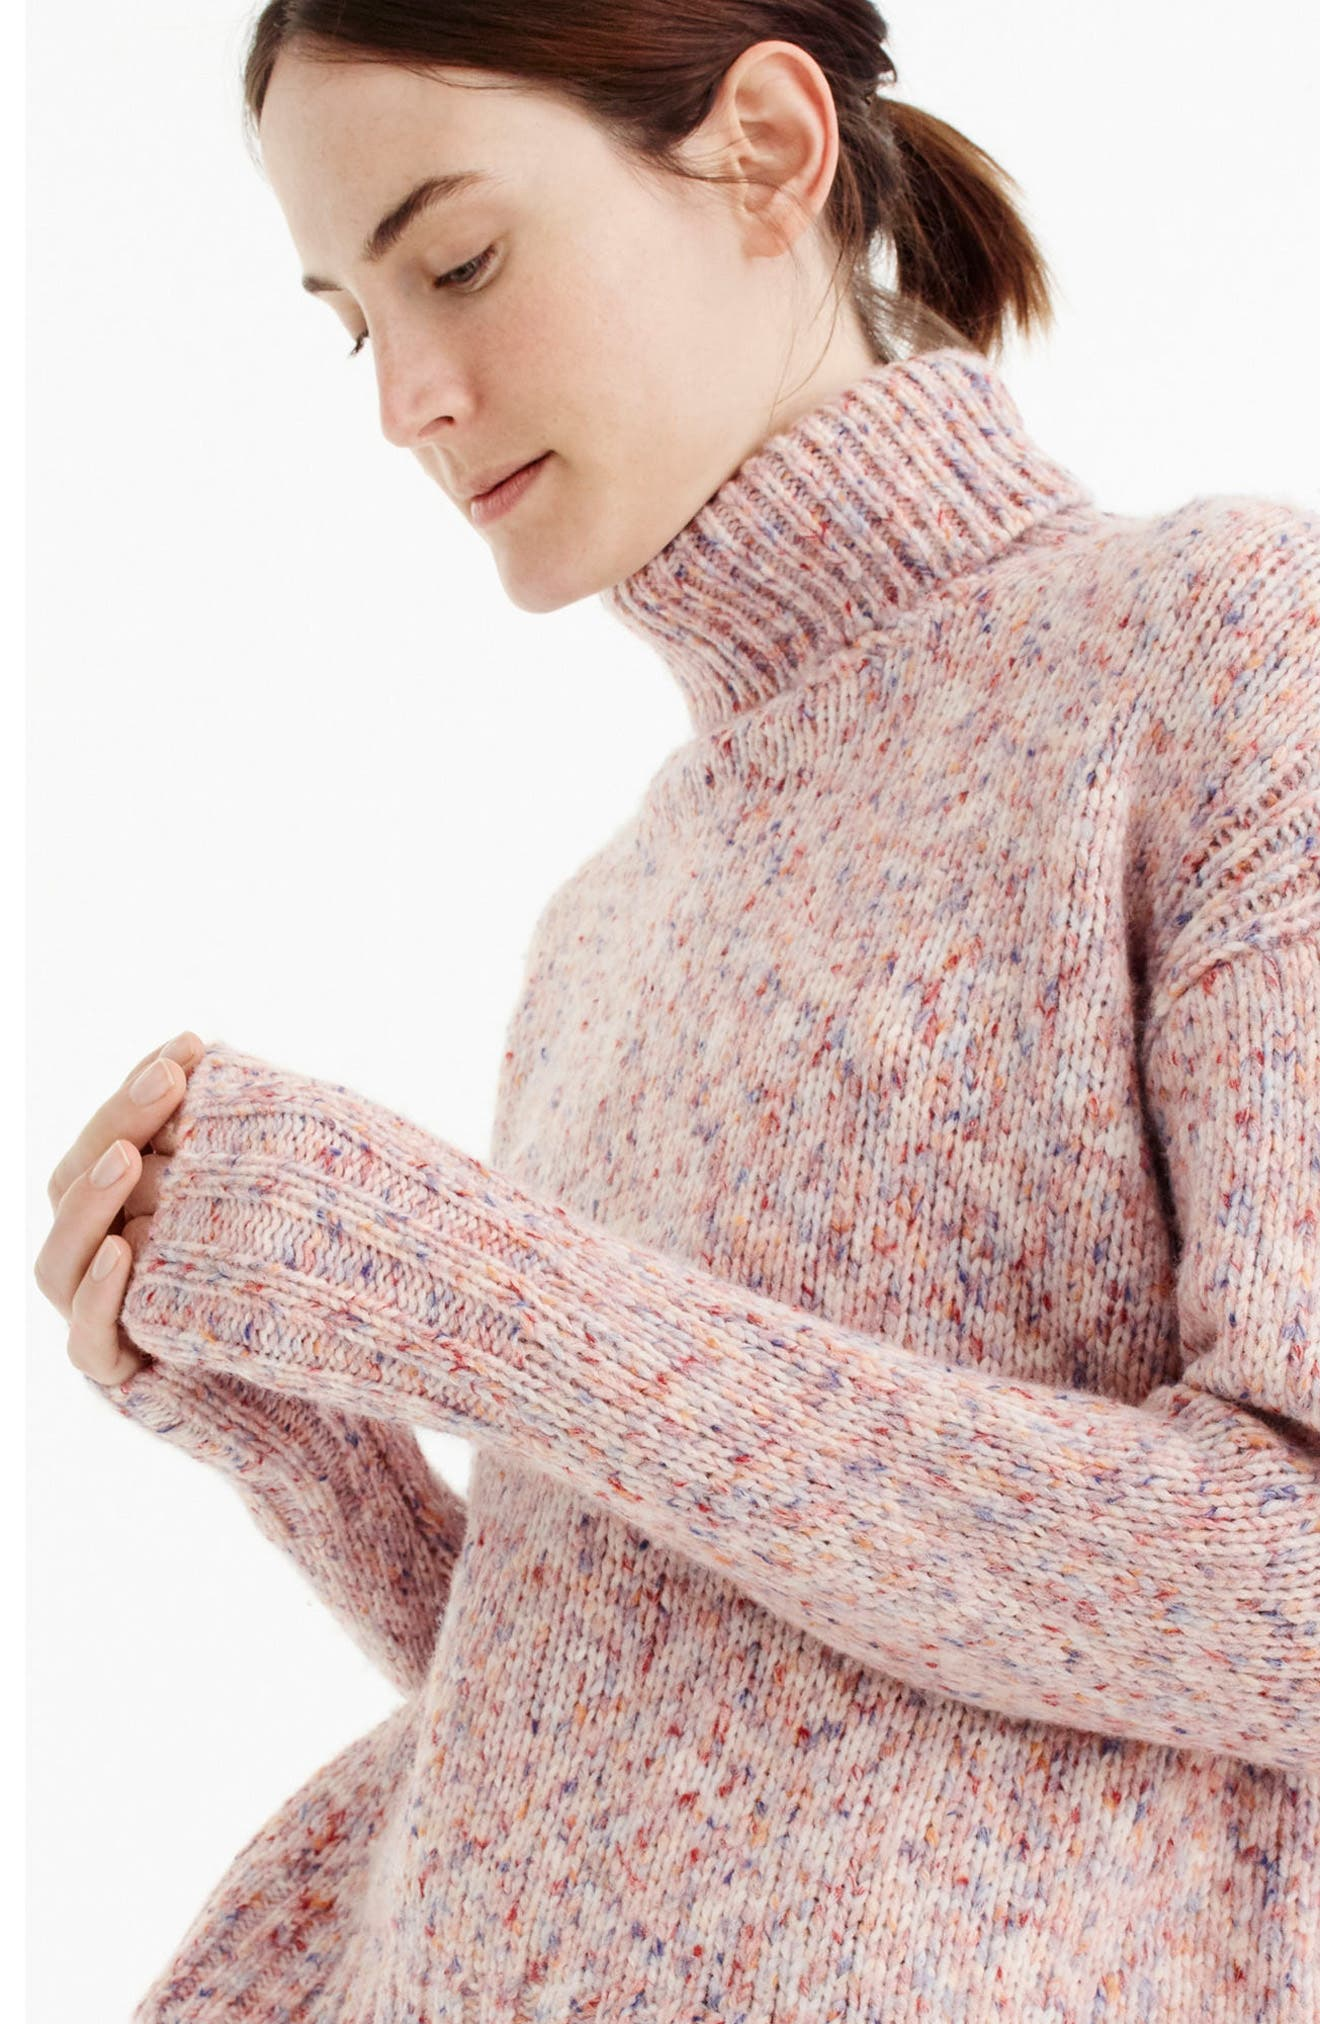 J.Crew Marled Wool Blend Turtleneck Sweater,                             Alternate thumbnail 2, color,                             Marled Confetti